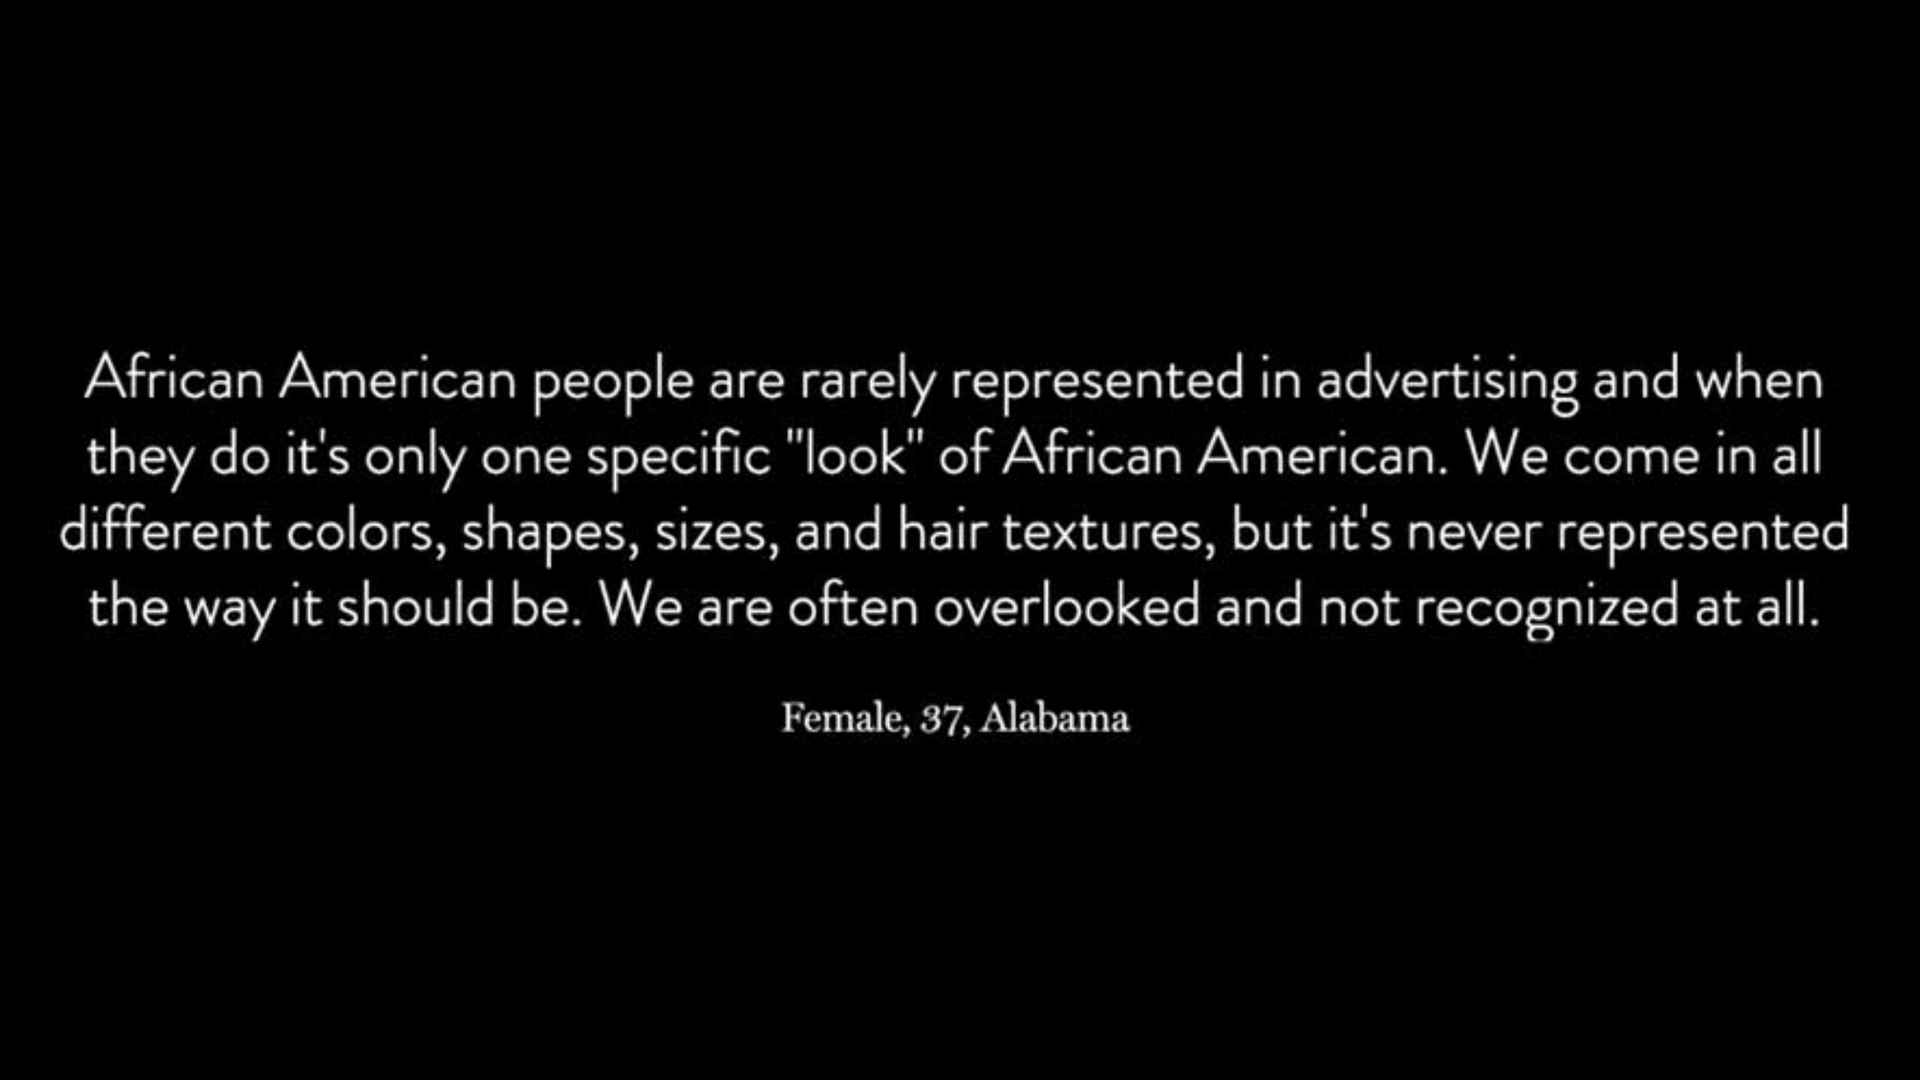 Here's What 500 Black Americans Have to Say About Black Representation in Advertising